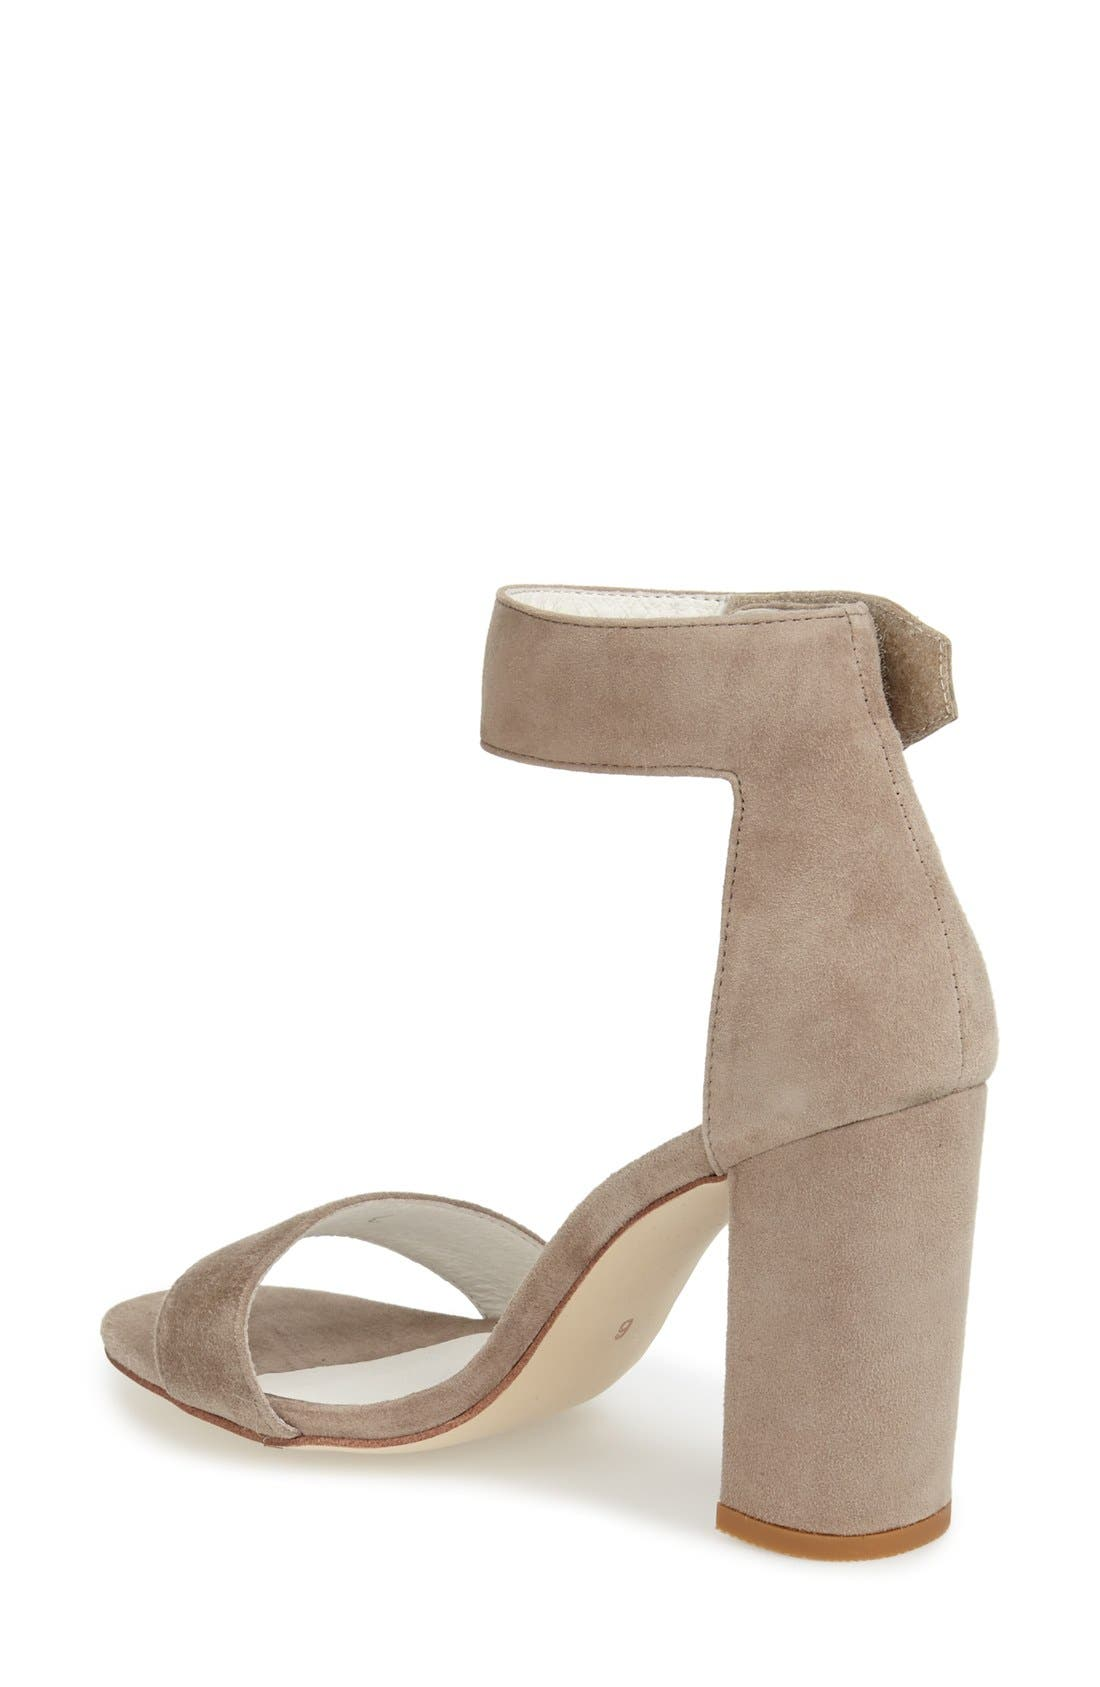 'Lindsay' Ankle Strap Sandal,                             Alternate thumbnail 14, color,